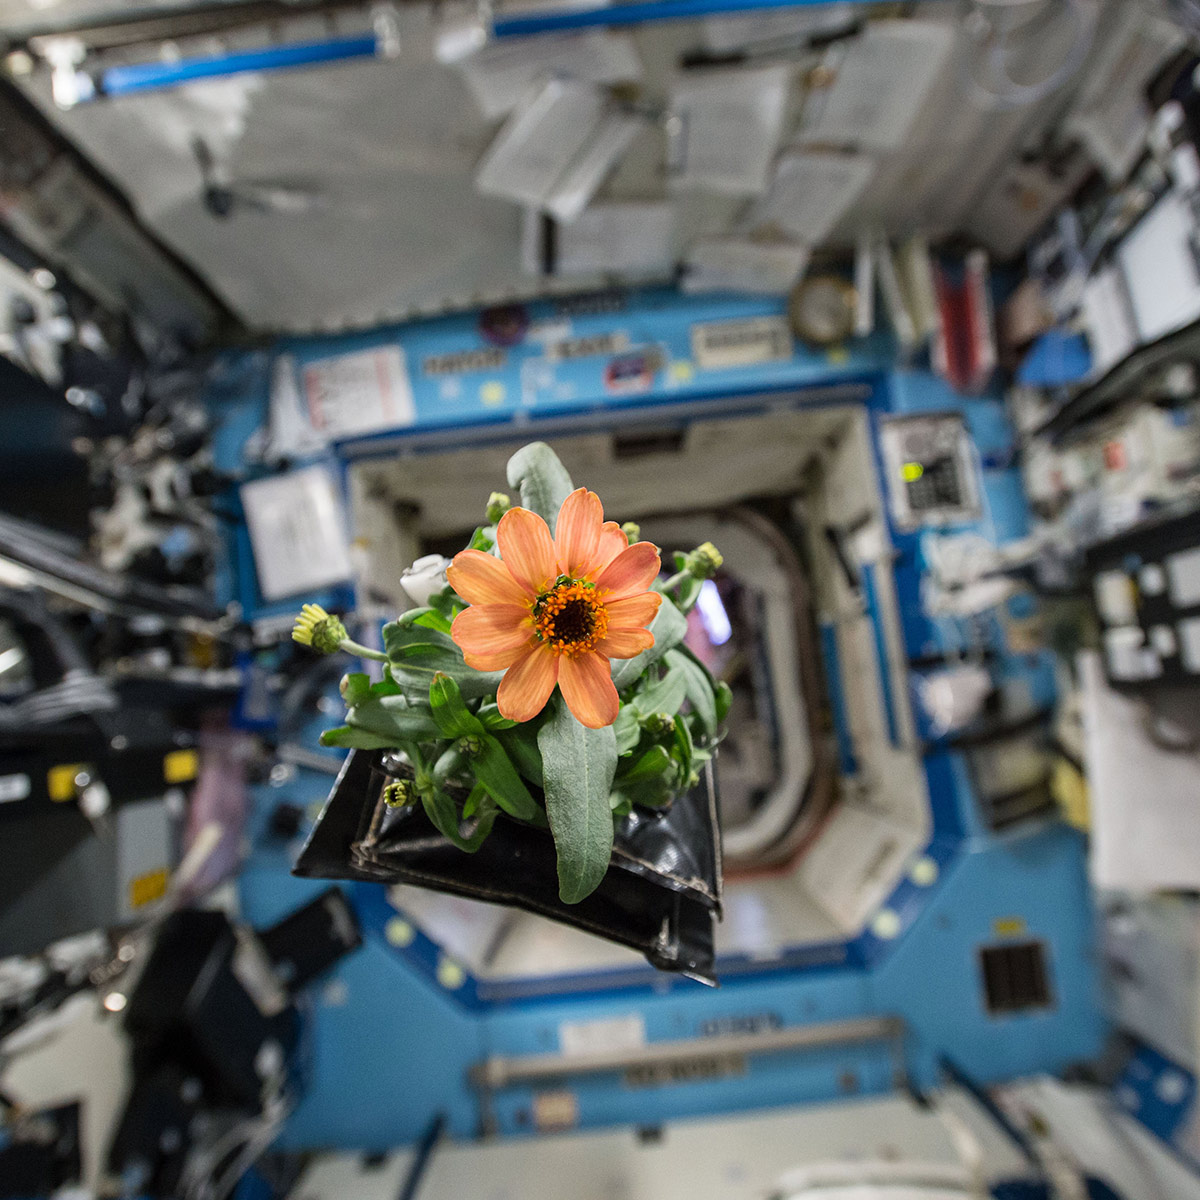 zinnia space station